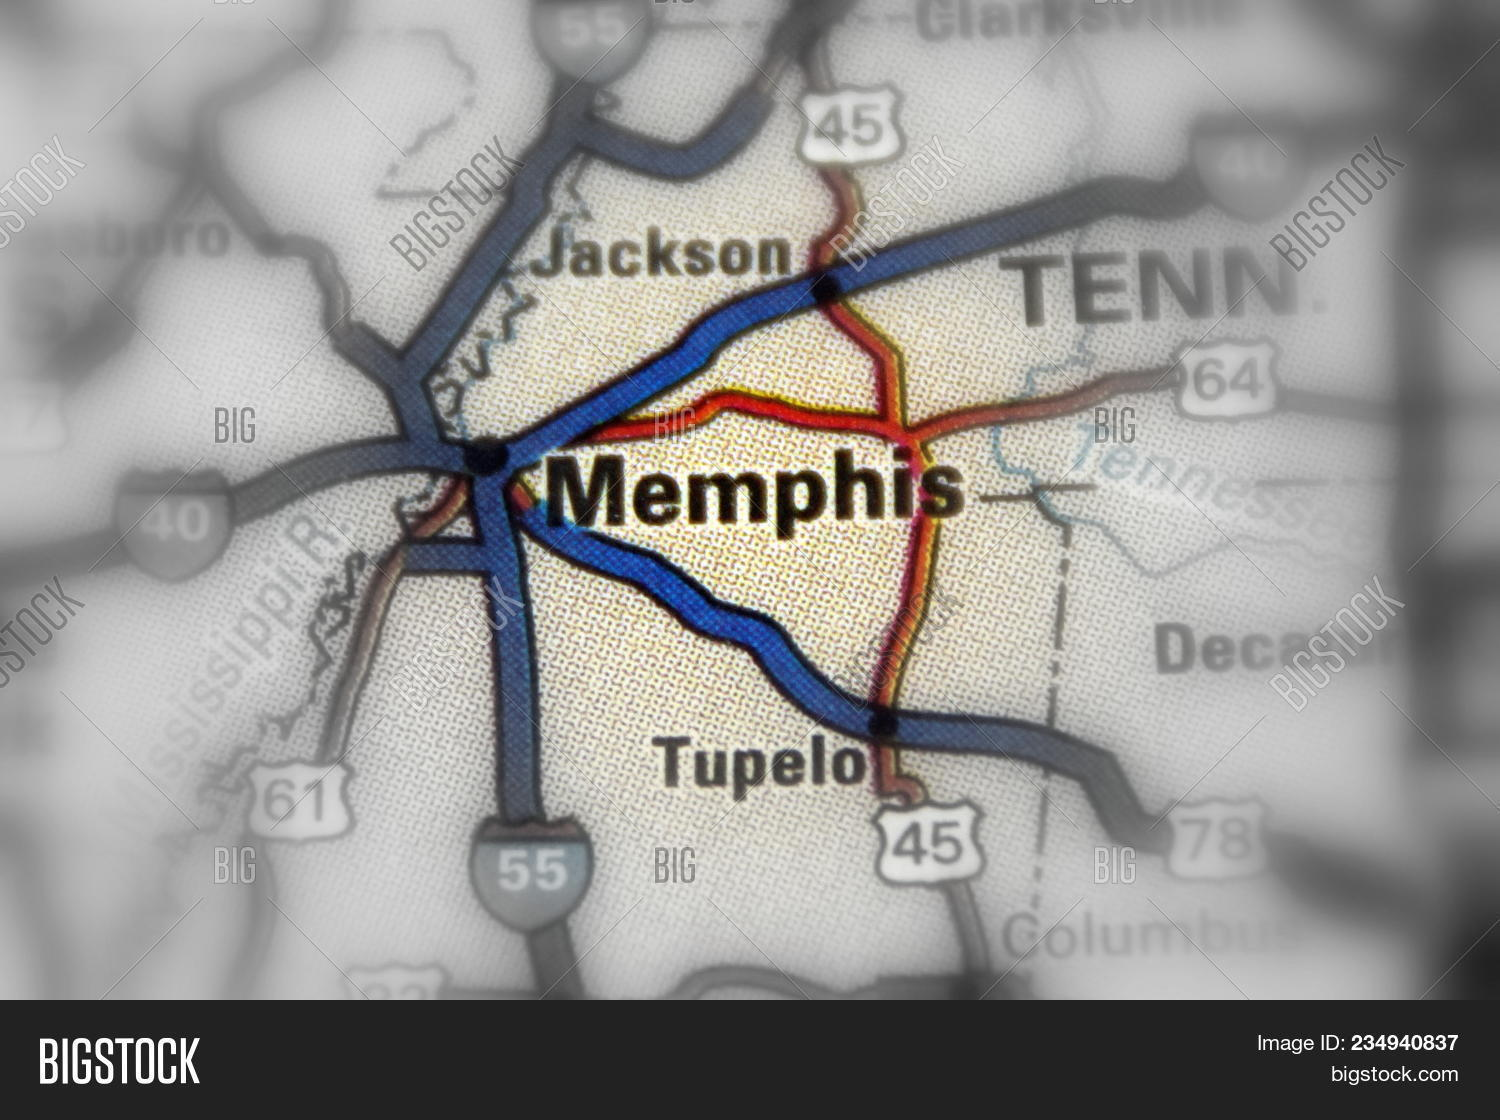 memphis wiring diagram memphis city image   photo  free trial  bigstock  memphis city image   photo  free trial